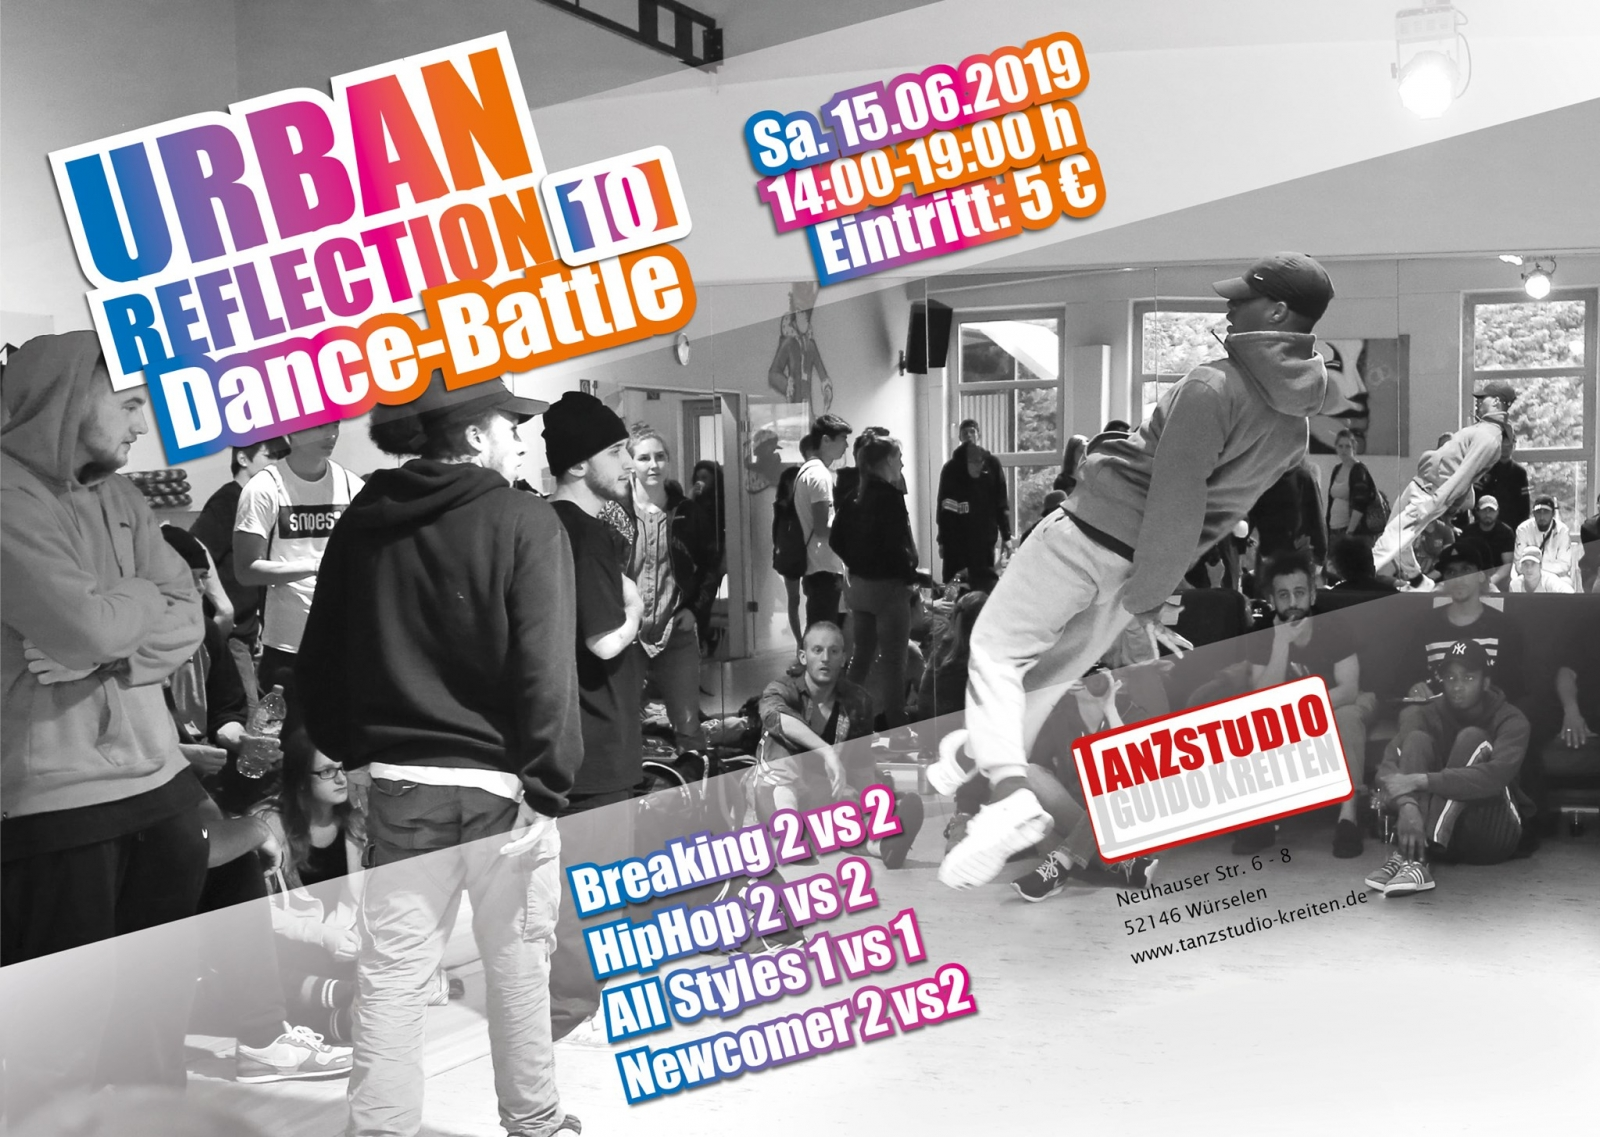 Dance Battle Urban Reflection 2019 poster